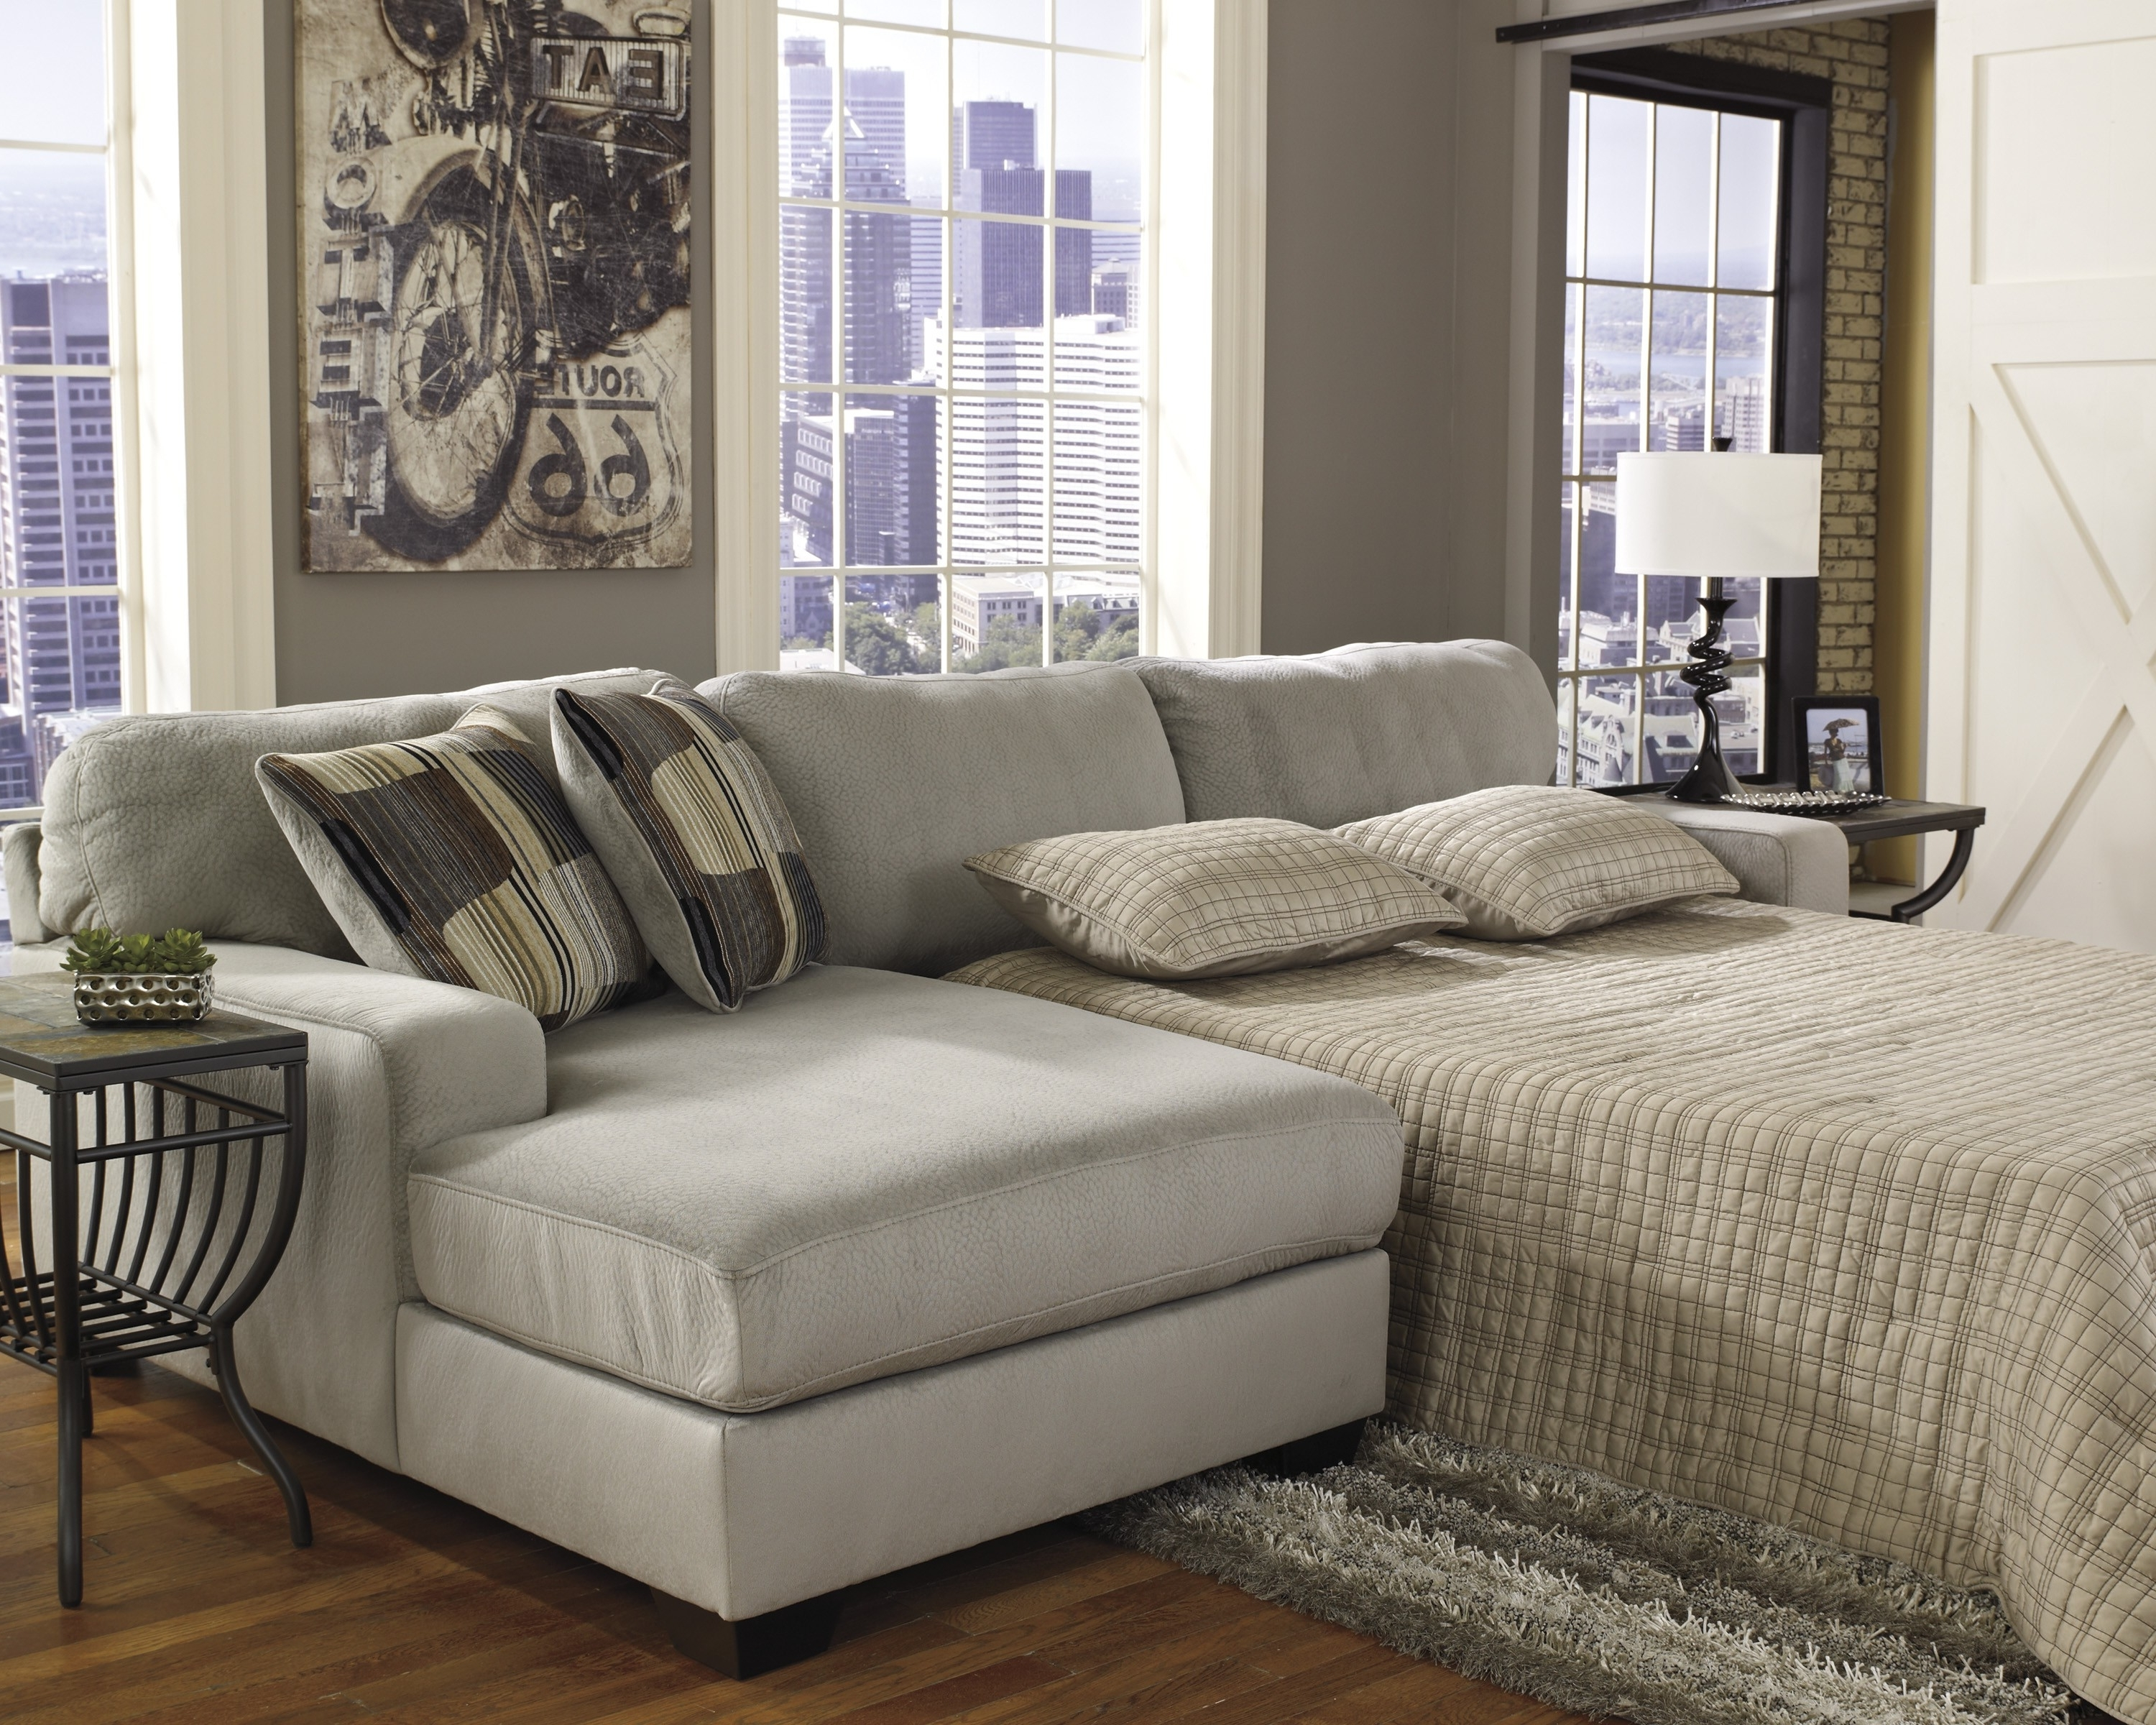 Favorite Astonishing Small Sleeper Sofa With Chaise 33 On West Elm Henry For West Elm Chaises (View 11 of 15)